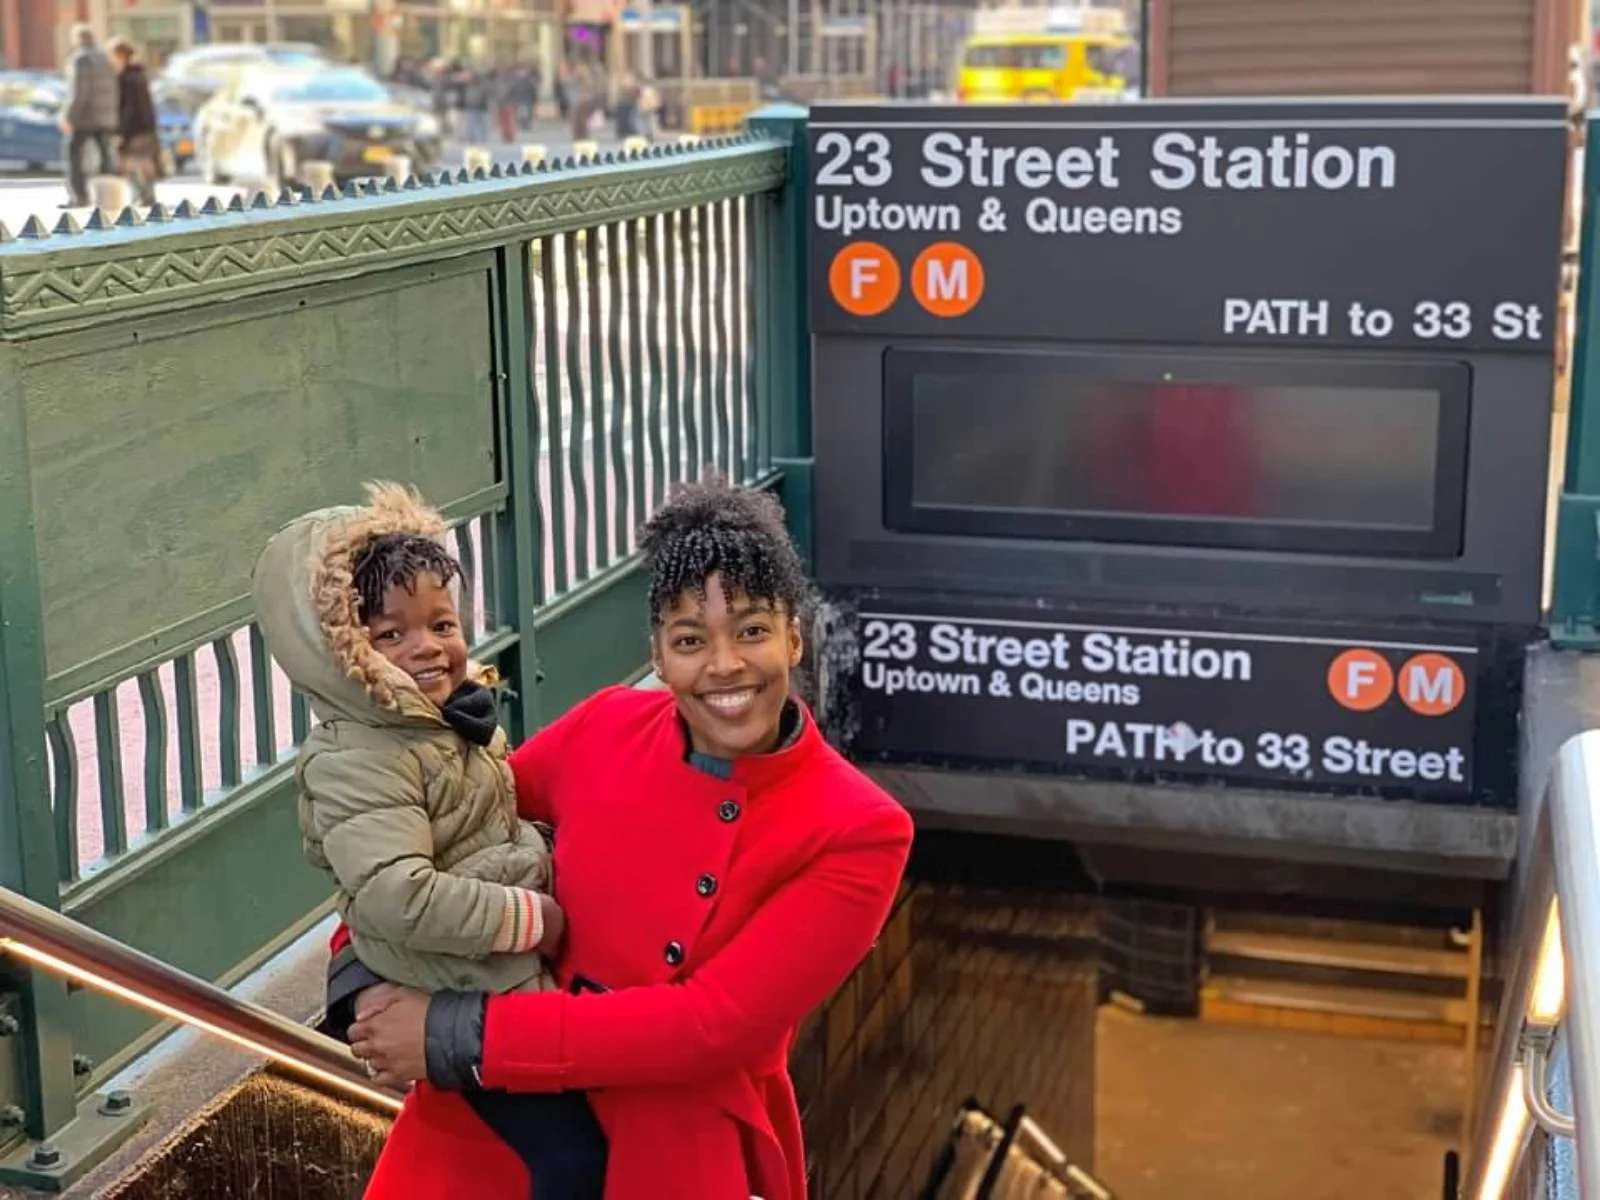 Things you didn't know you could do with little kids in New York City